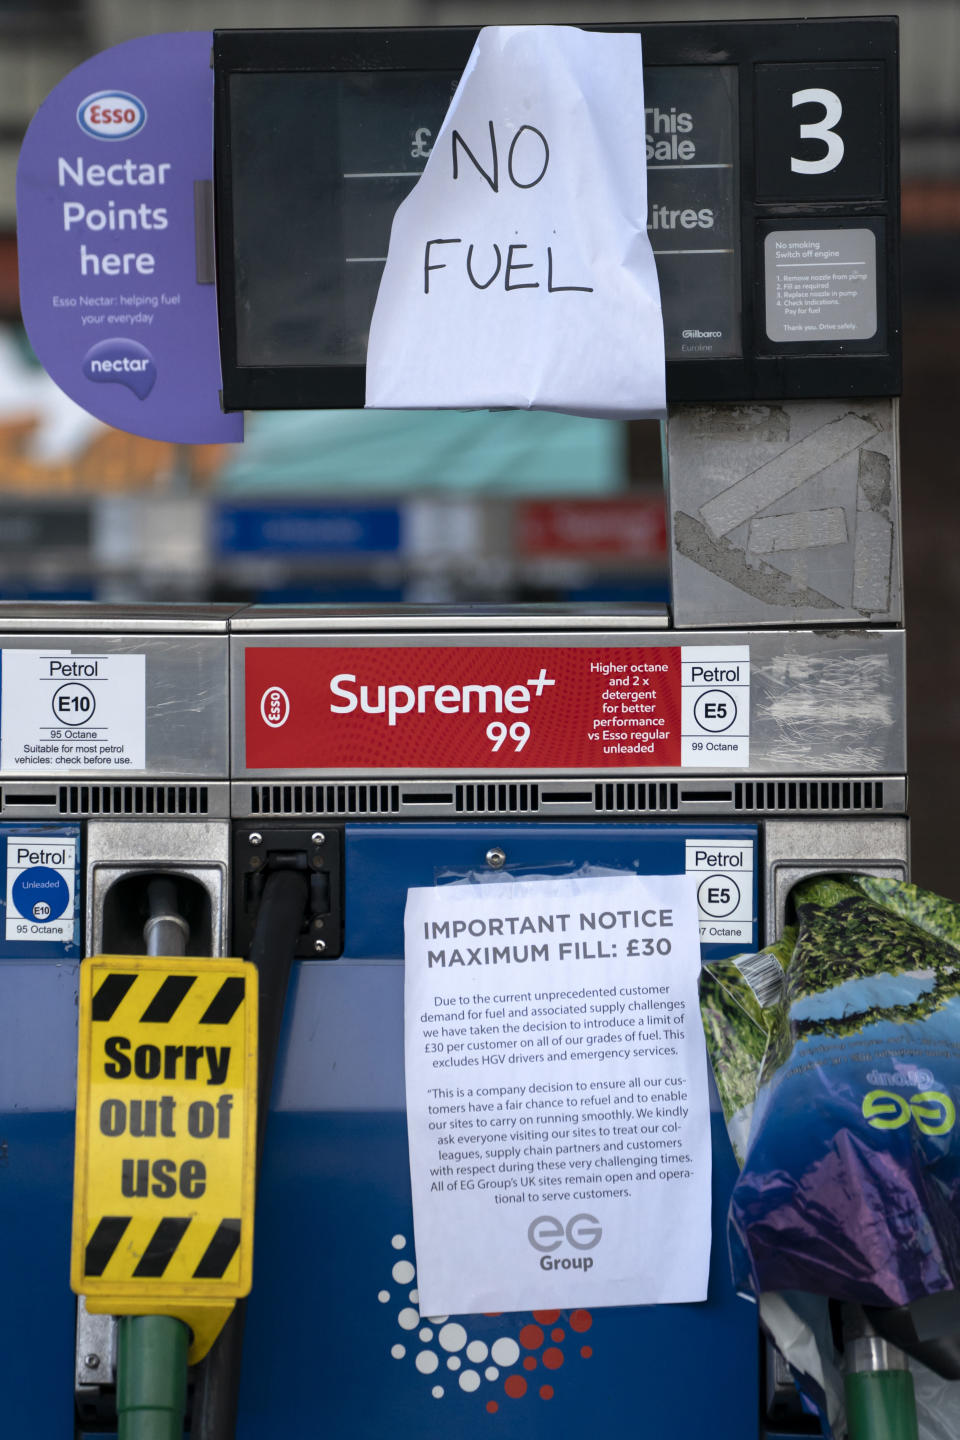 Closed pumps are seen on the forecourt of a petrol station in Manchester which has run out of fuel after an outbreak of panic buying in the UK, Monday, Sept. 27, 2021. British Prime Minister Boris Johnson is said to be considering whether to call in the army to deliver fuel to petrol stations as pumps ran dry after days of panic buying. ( AP Photo/Jon Super)